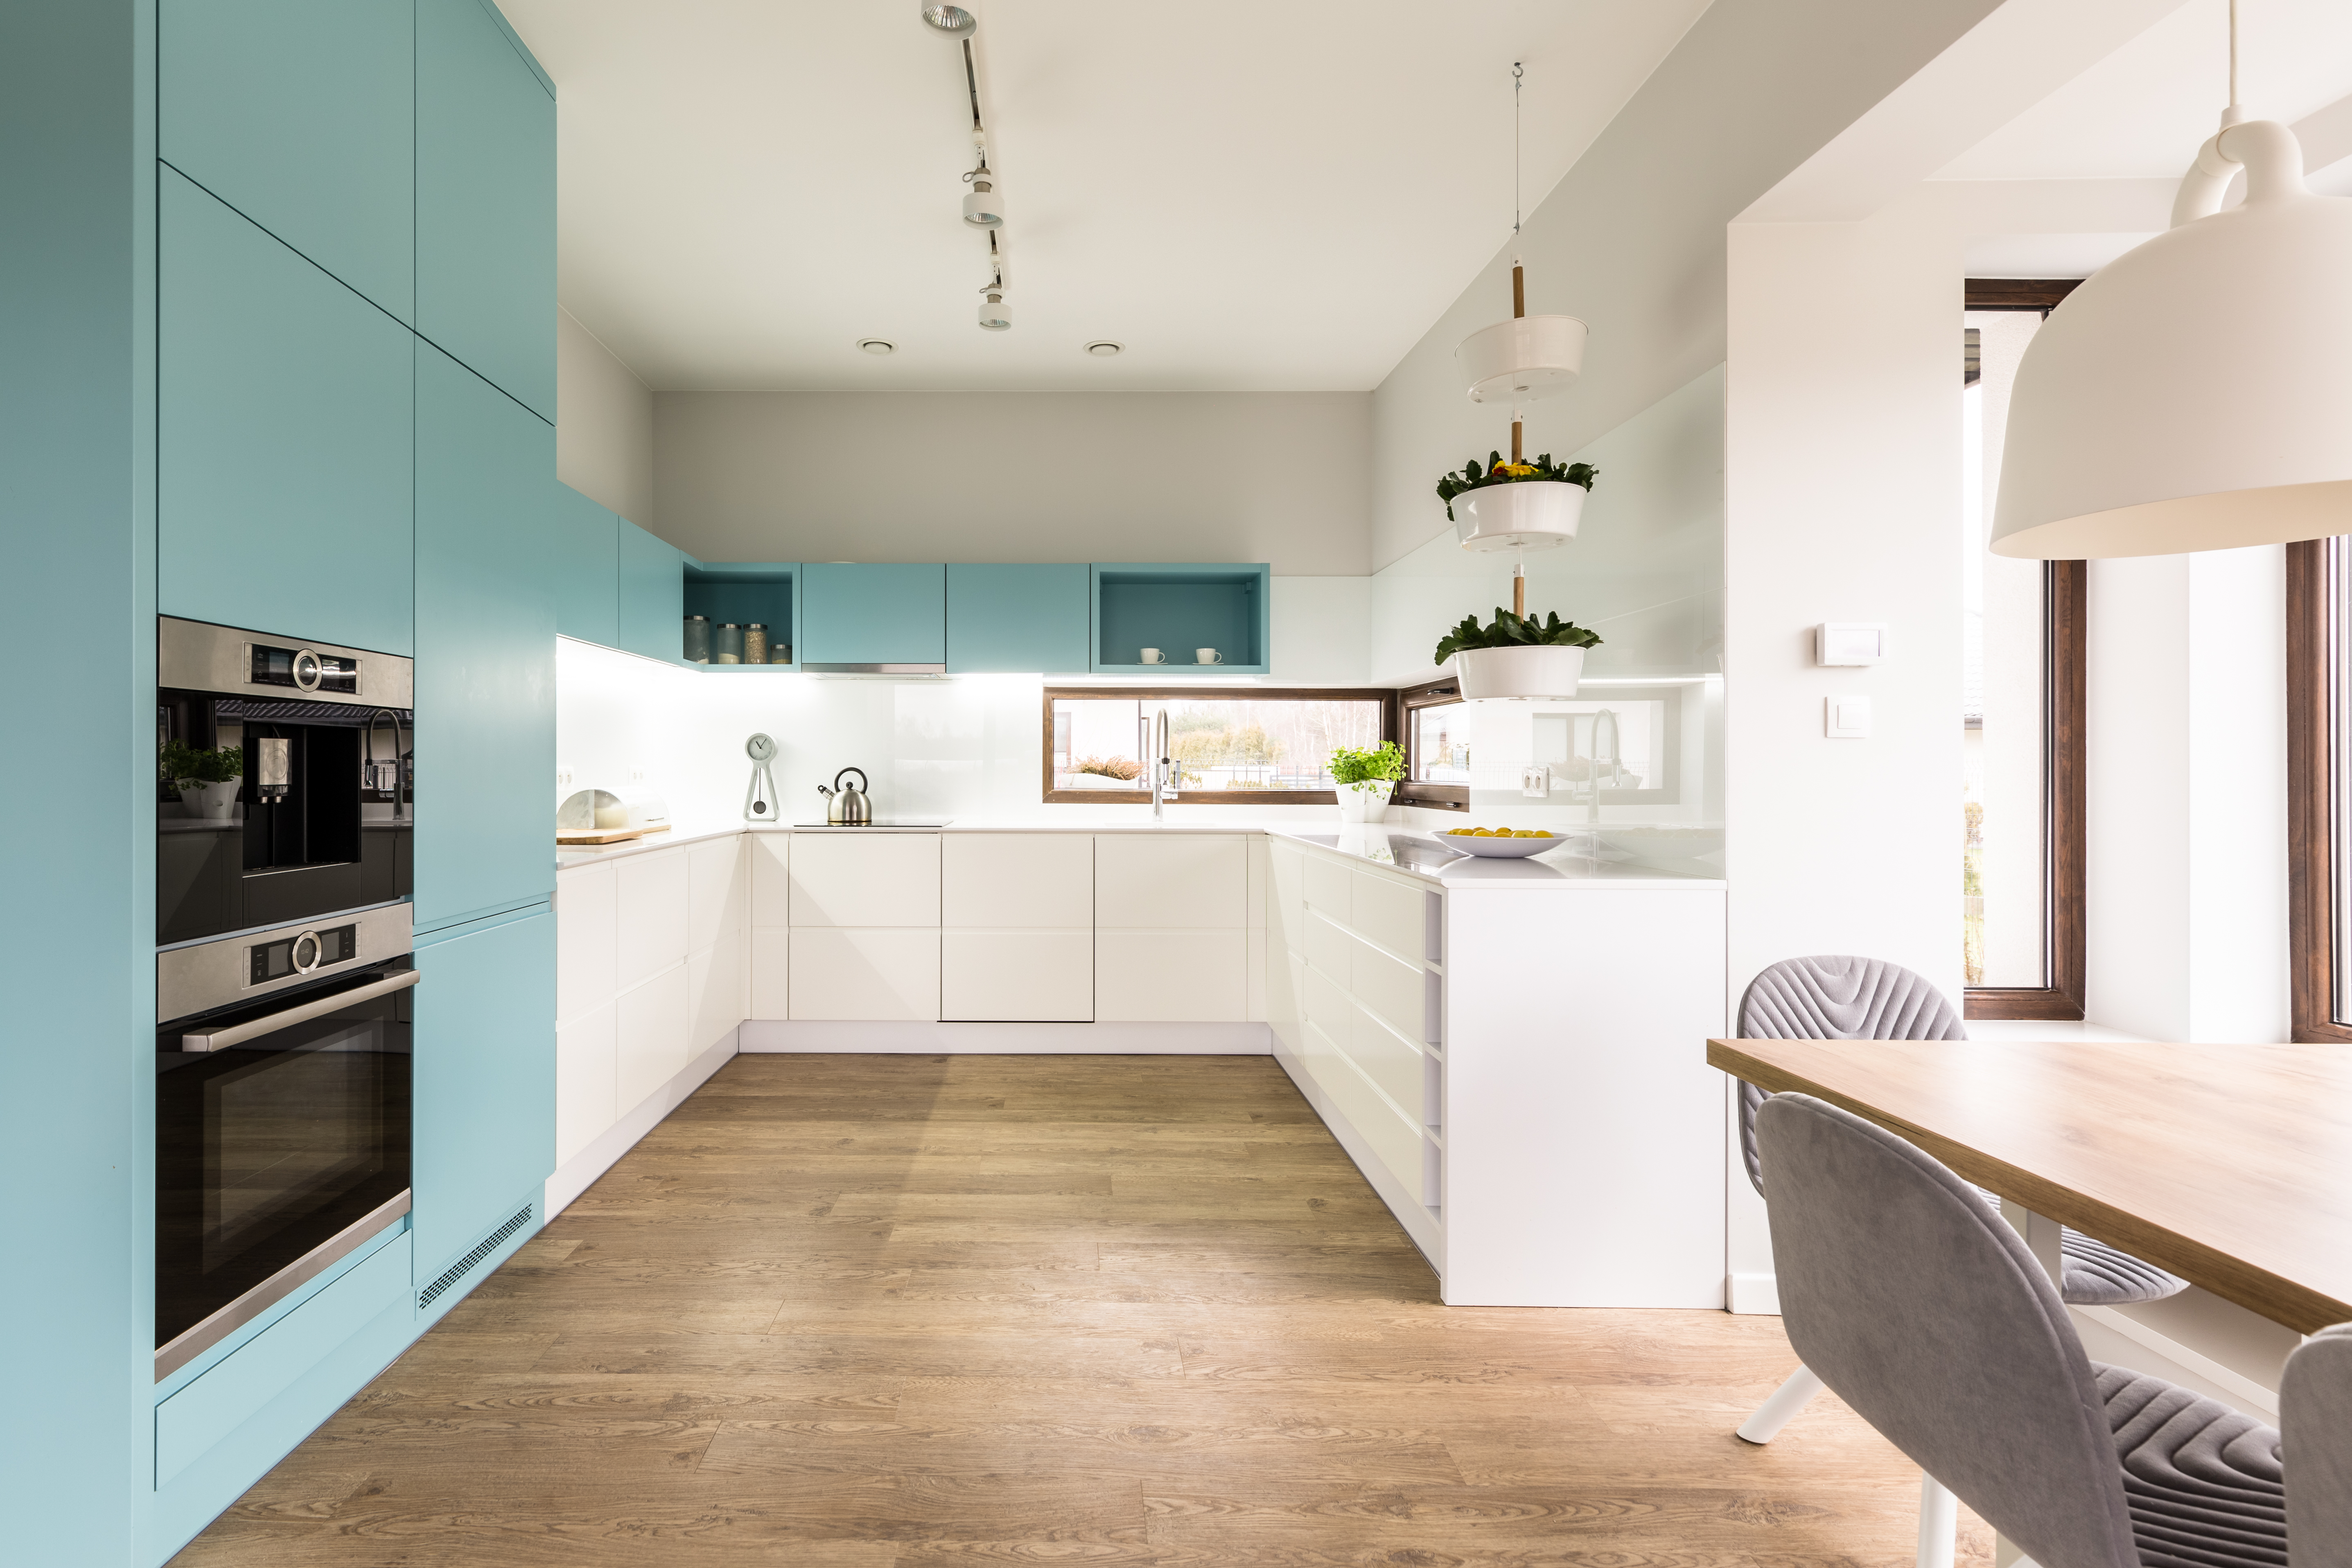 Kitchen with white and blue cabinets